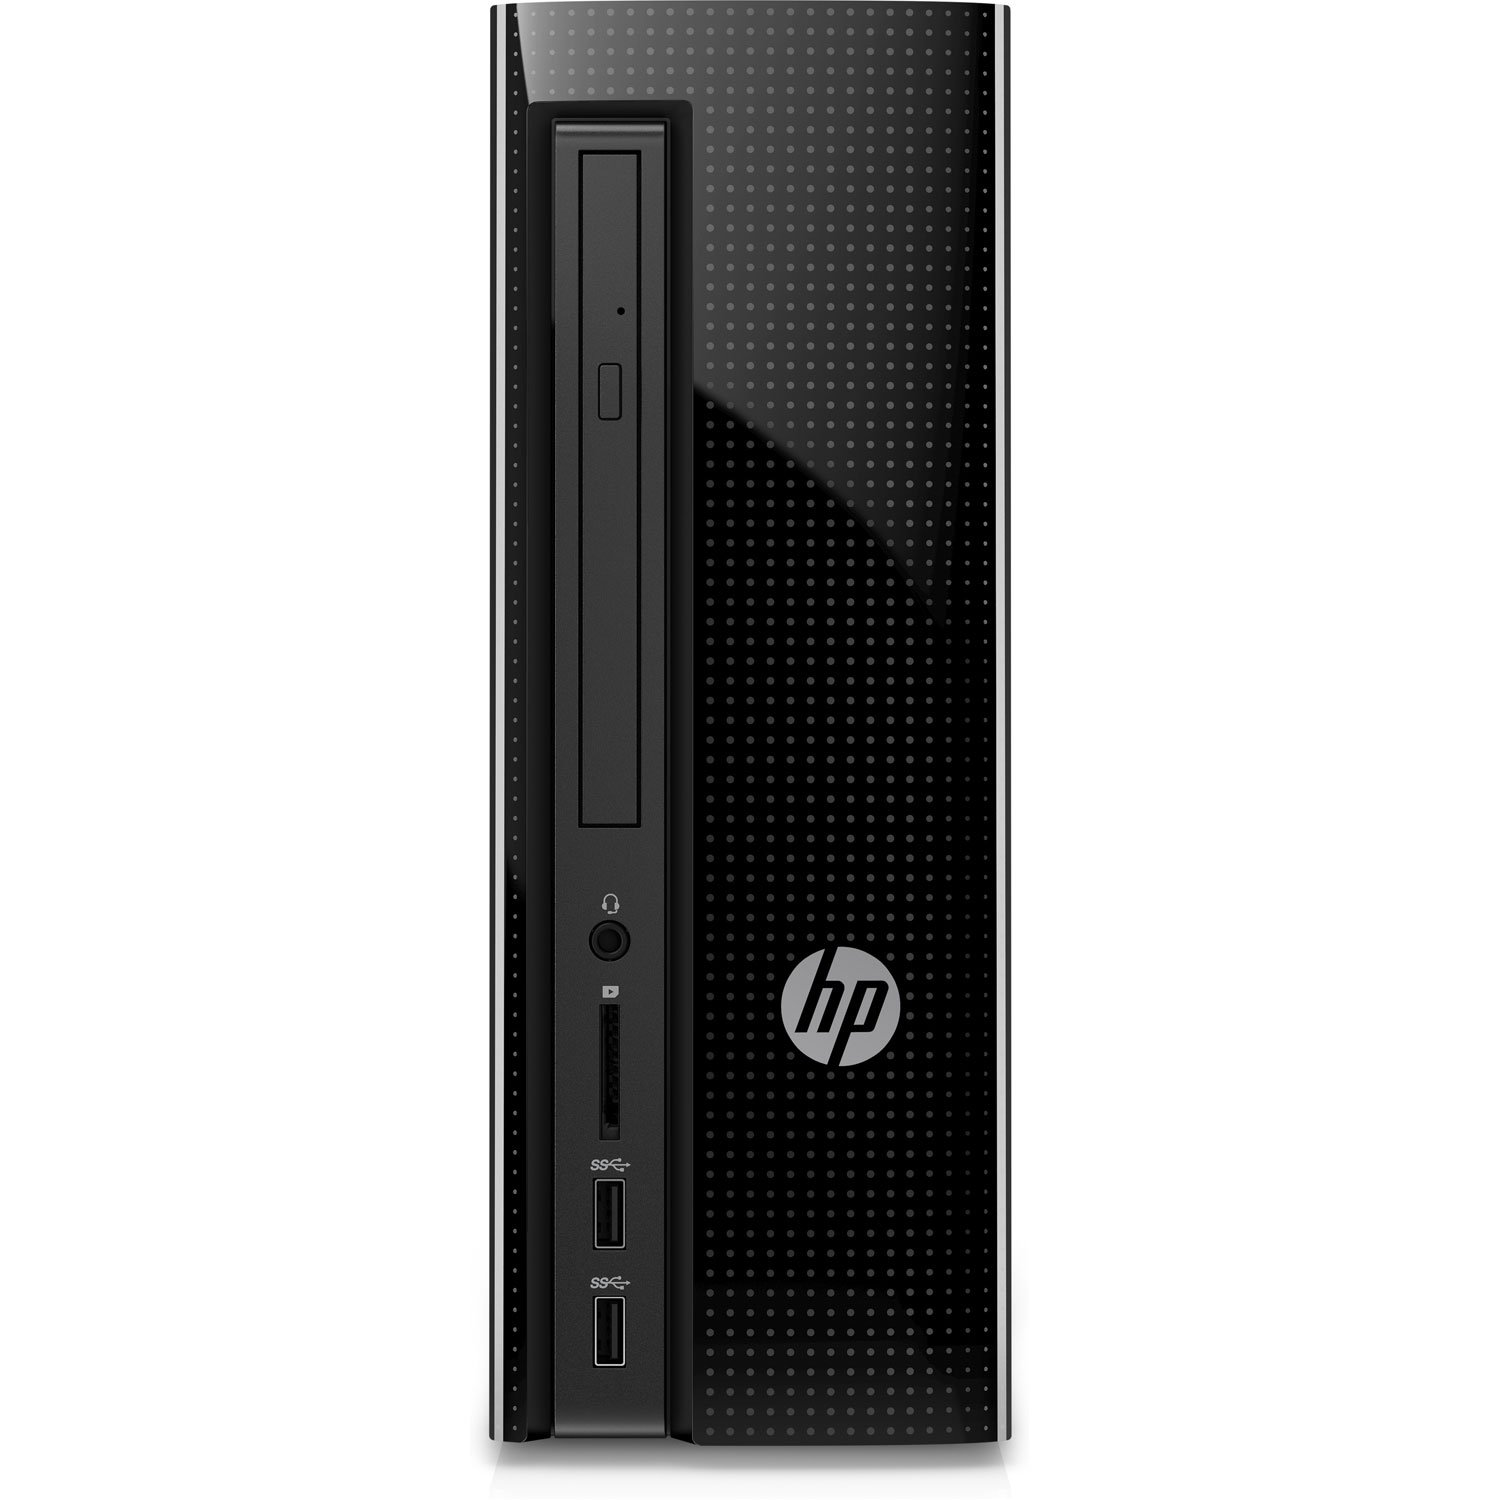 HP Slimline Desktop Computer, Intel Pentium J4205, 4GB RAM, 1TB hard drive, Windows 10 (270-a010, Black)